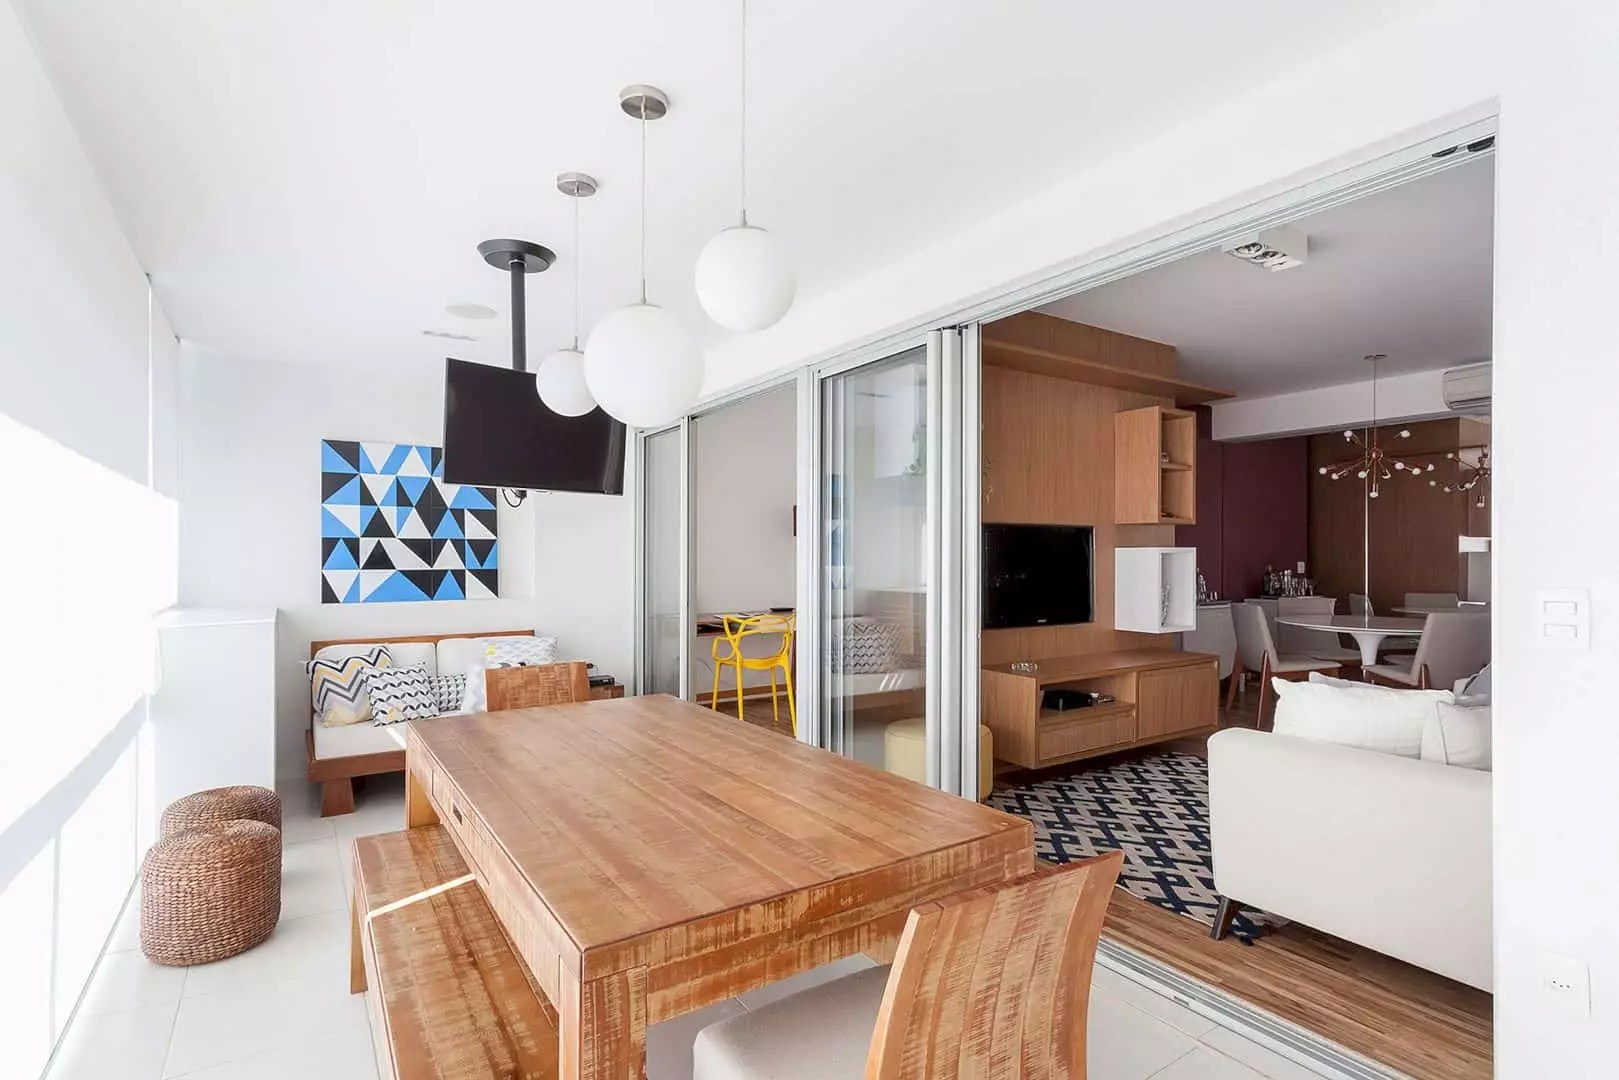 Michigan Apartment: A Cozy Home with A New Look and Original Existing Structure